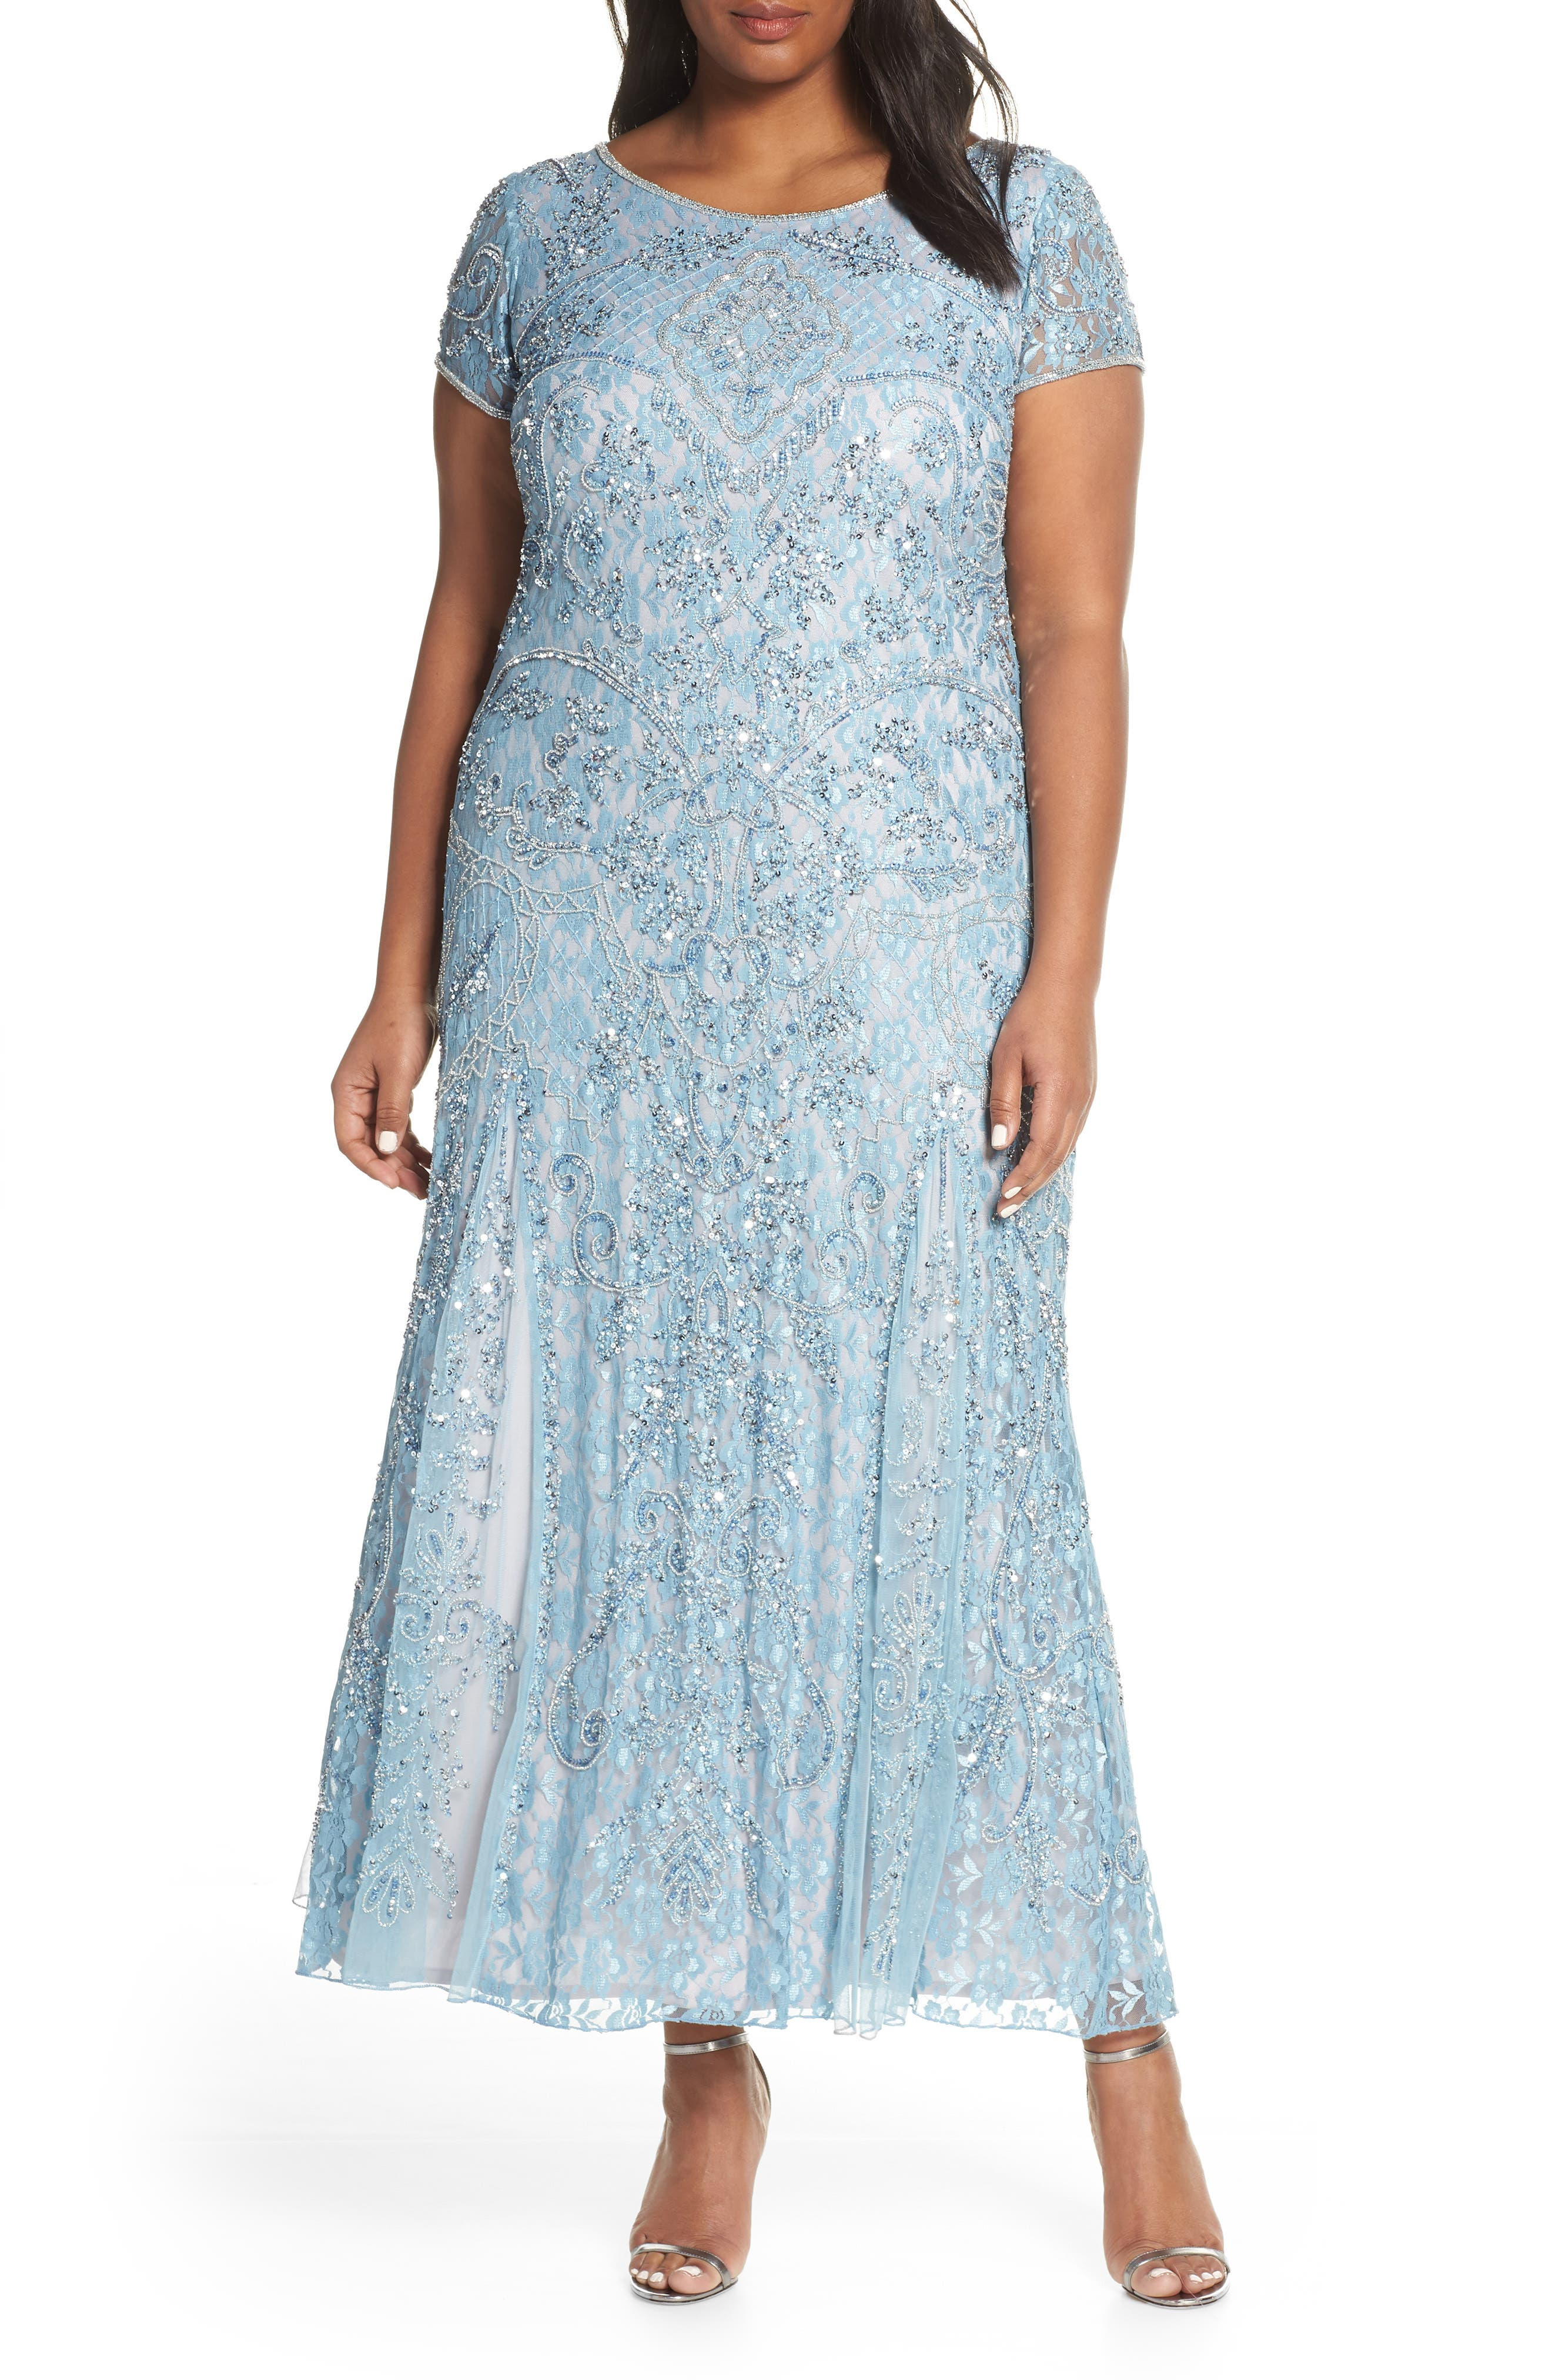 1920s Plus Size Fashion in the Jazz Age Plus Size Womens Pisarro Nights Embellished Lace A-Line Dress Size 24W - Blue $238.00 AT vintagedancer.com